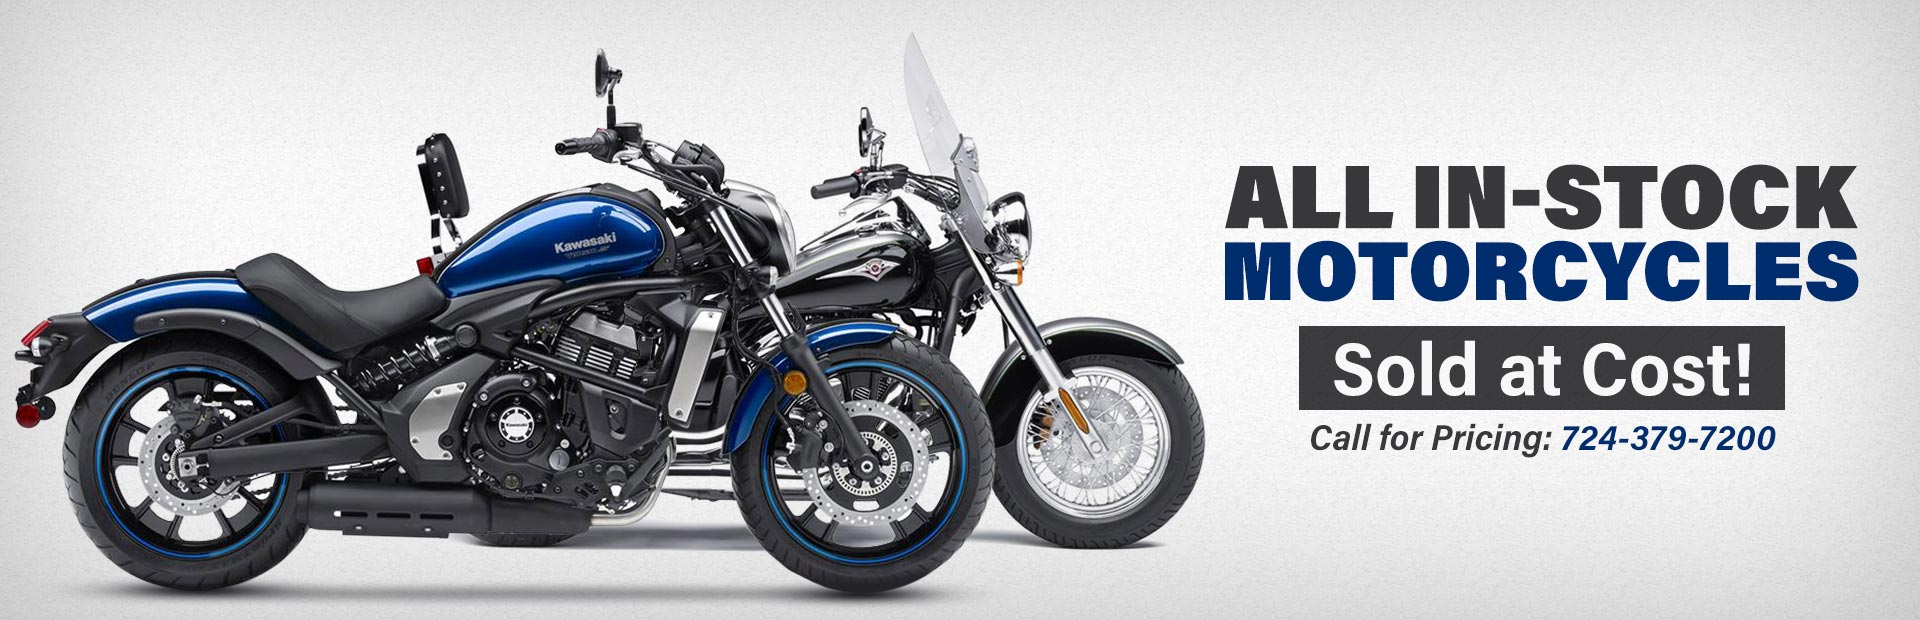 All in-stock motorcycles are sold at cost! Call 724-379-7200 for pricing.